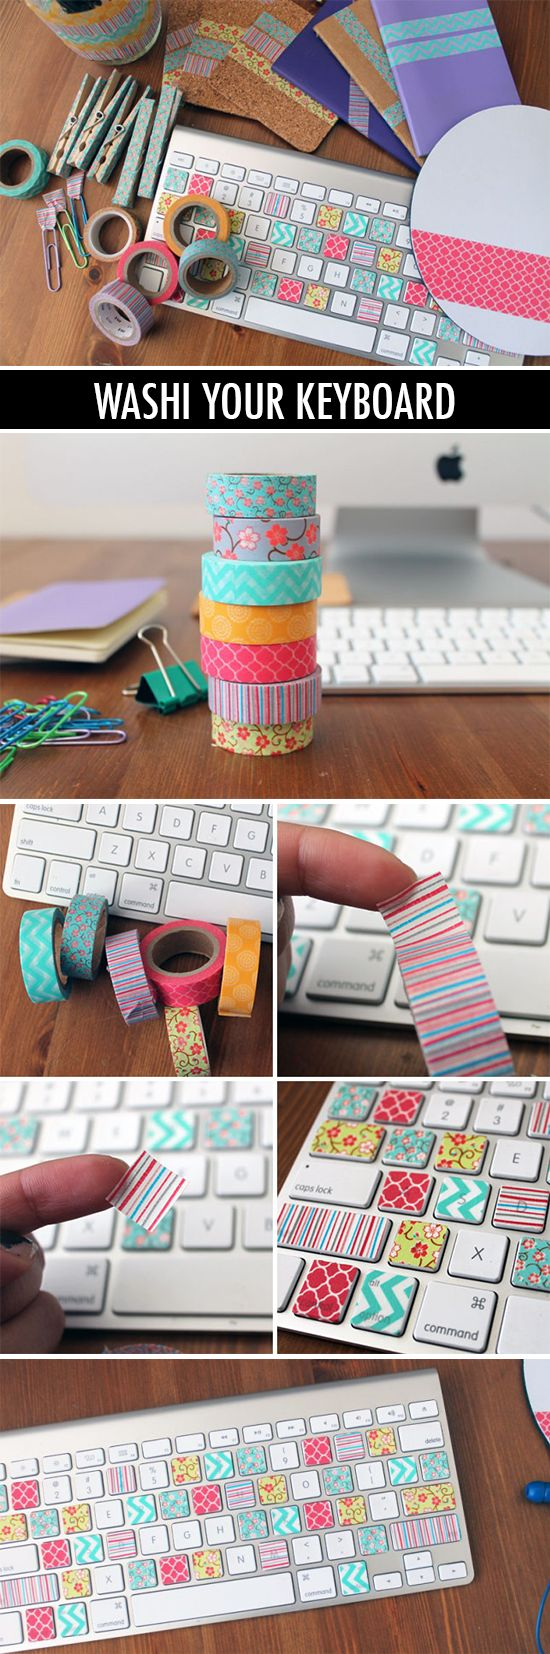 Brighten up your keyboard with wasabi tape...looks so cute but I still hunt & peck so much. I wonder if you can see the letters through the tape??